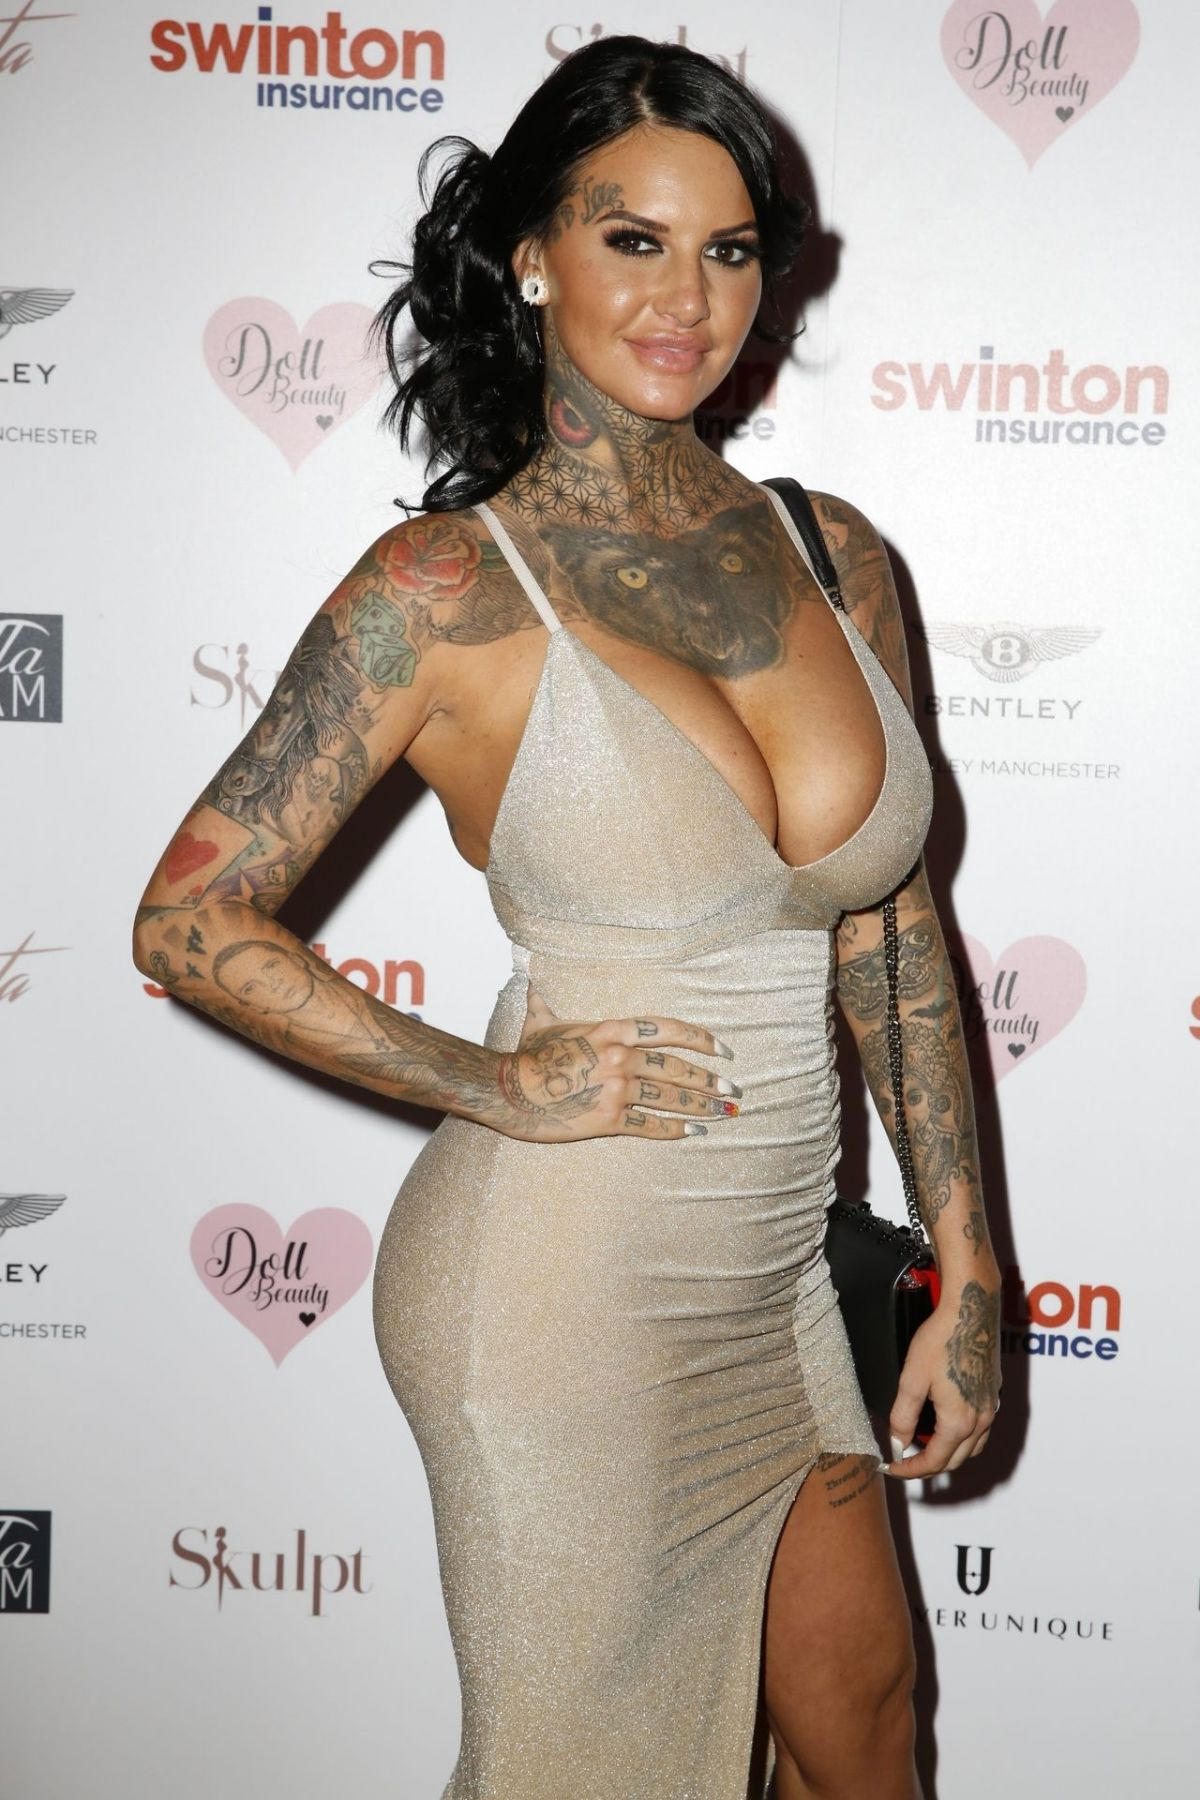 JEMMA LUCY at Creme Charity Ball in Cheshire 09/21/2019